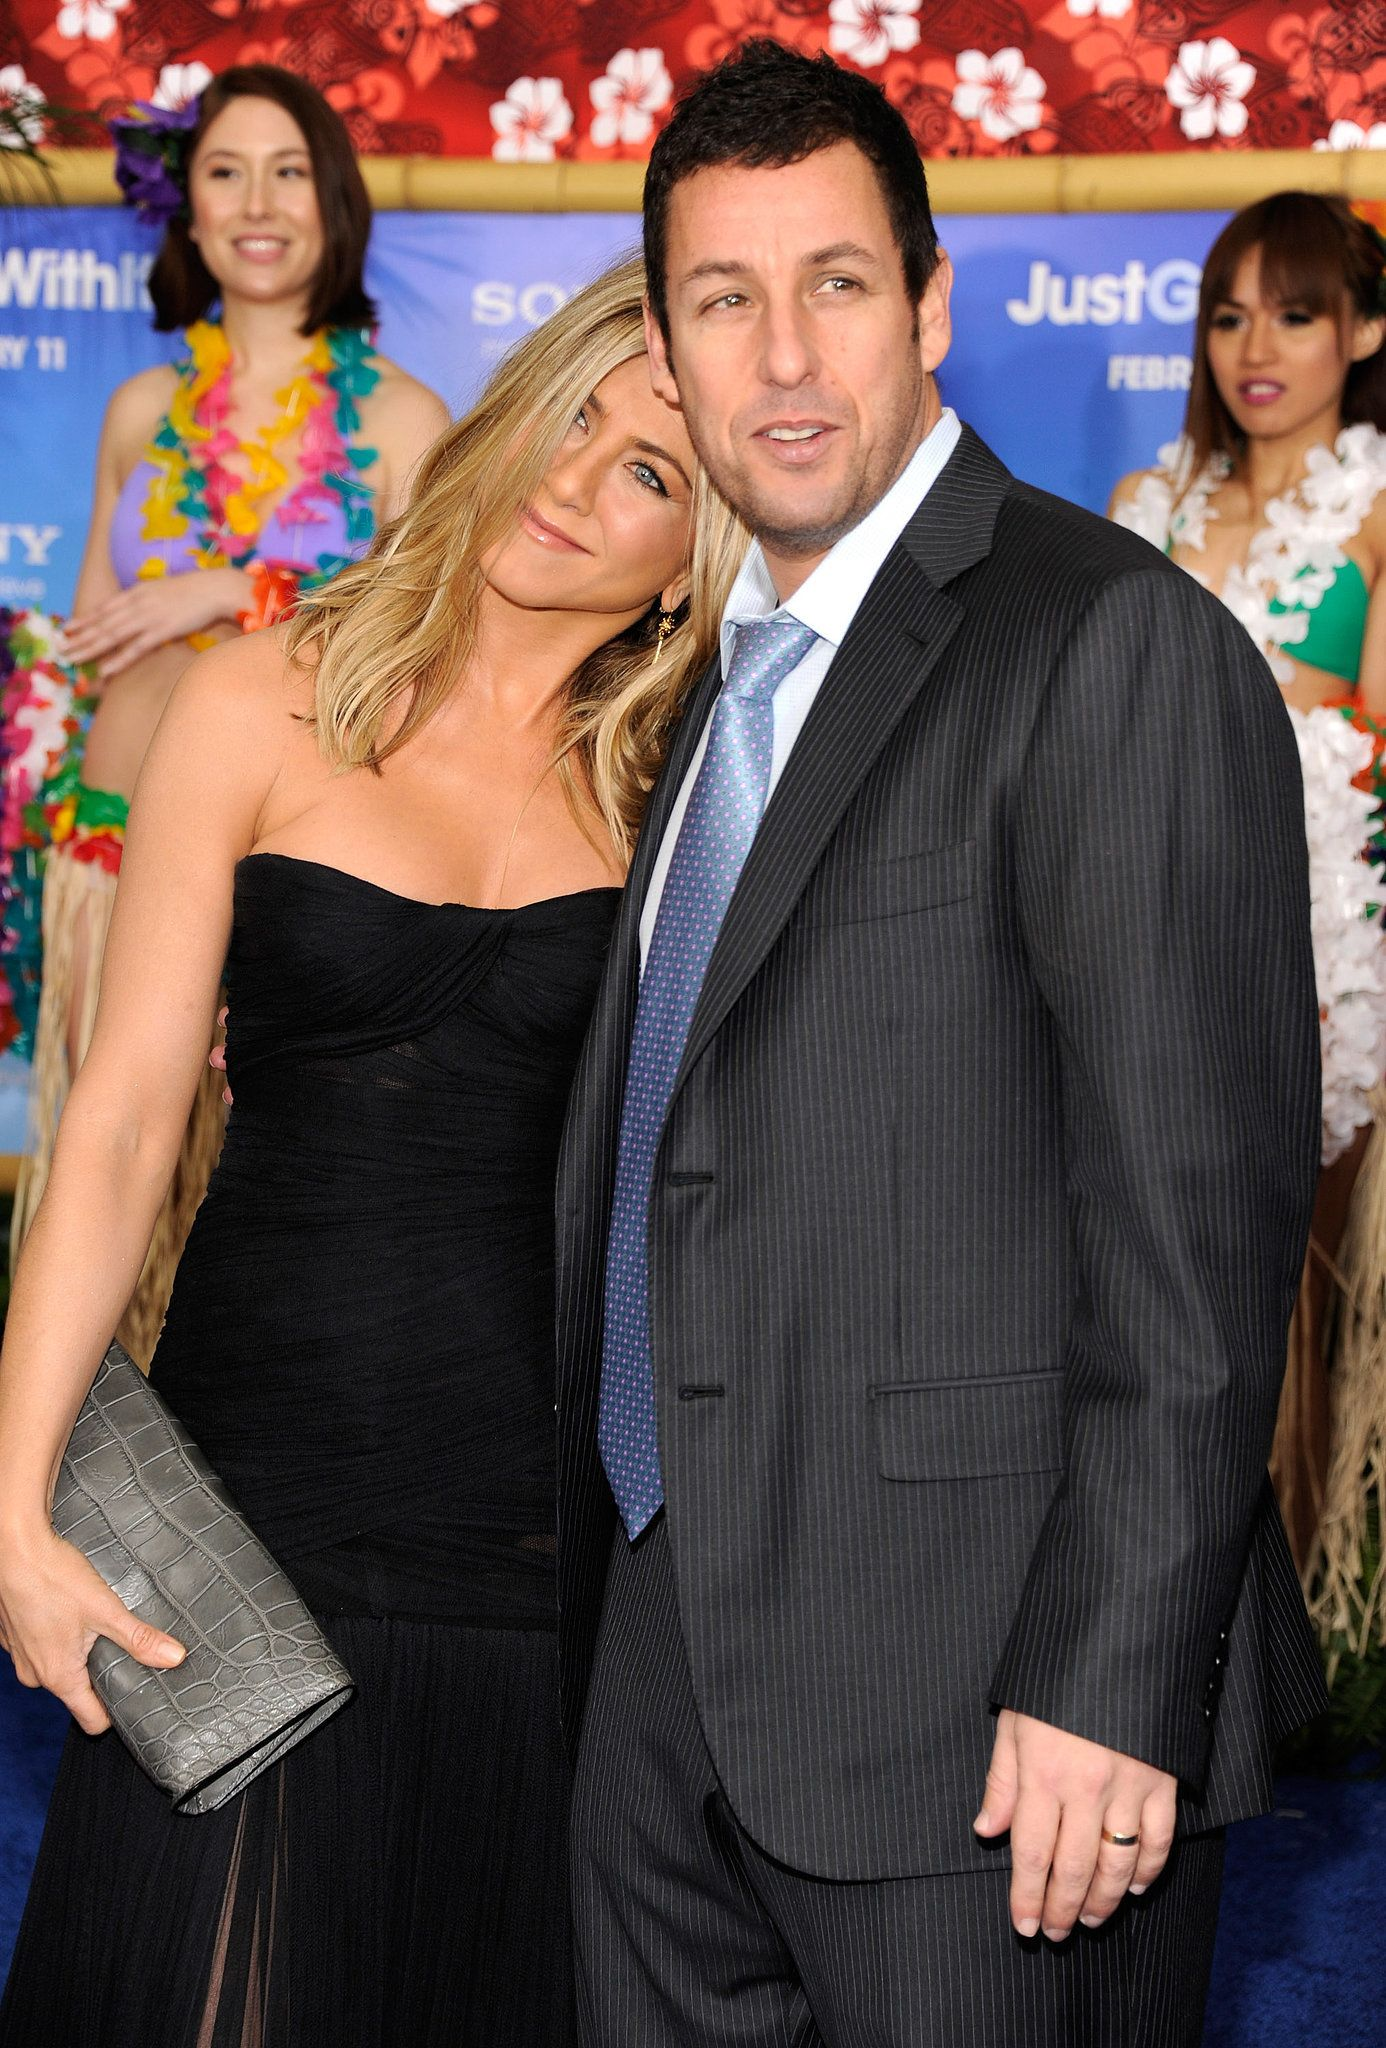 Jen shared a sweet moment with Adam Sandler at the NYC